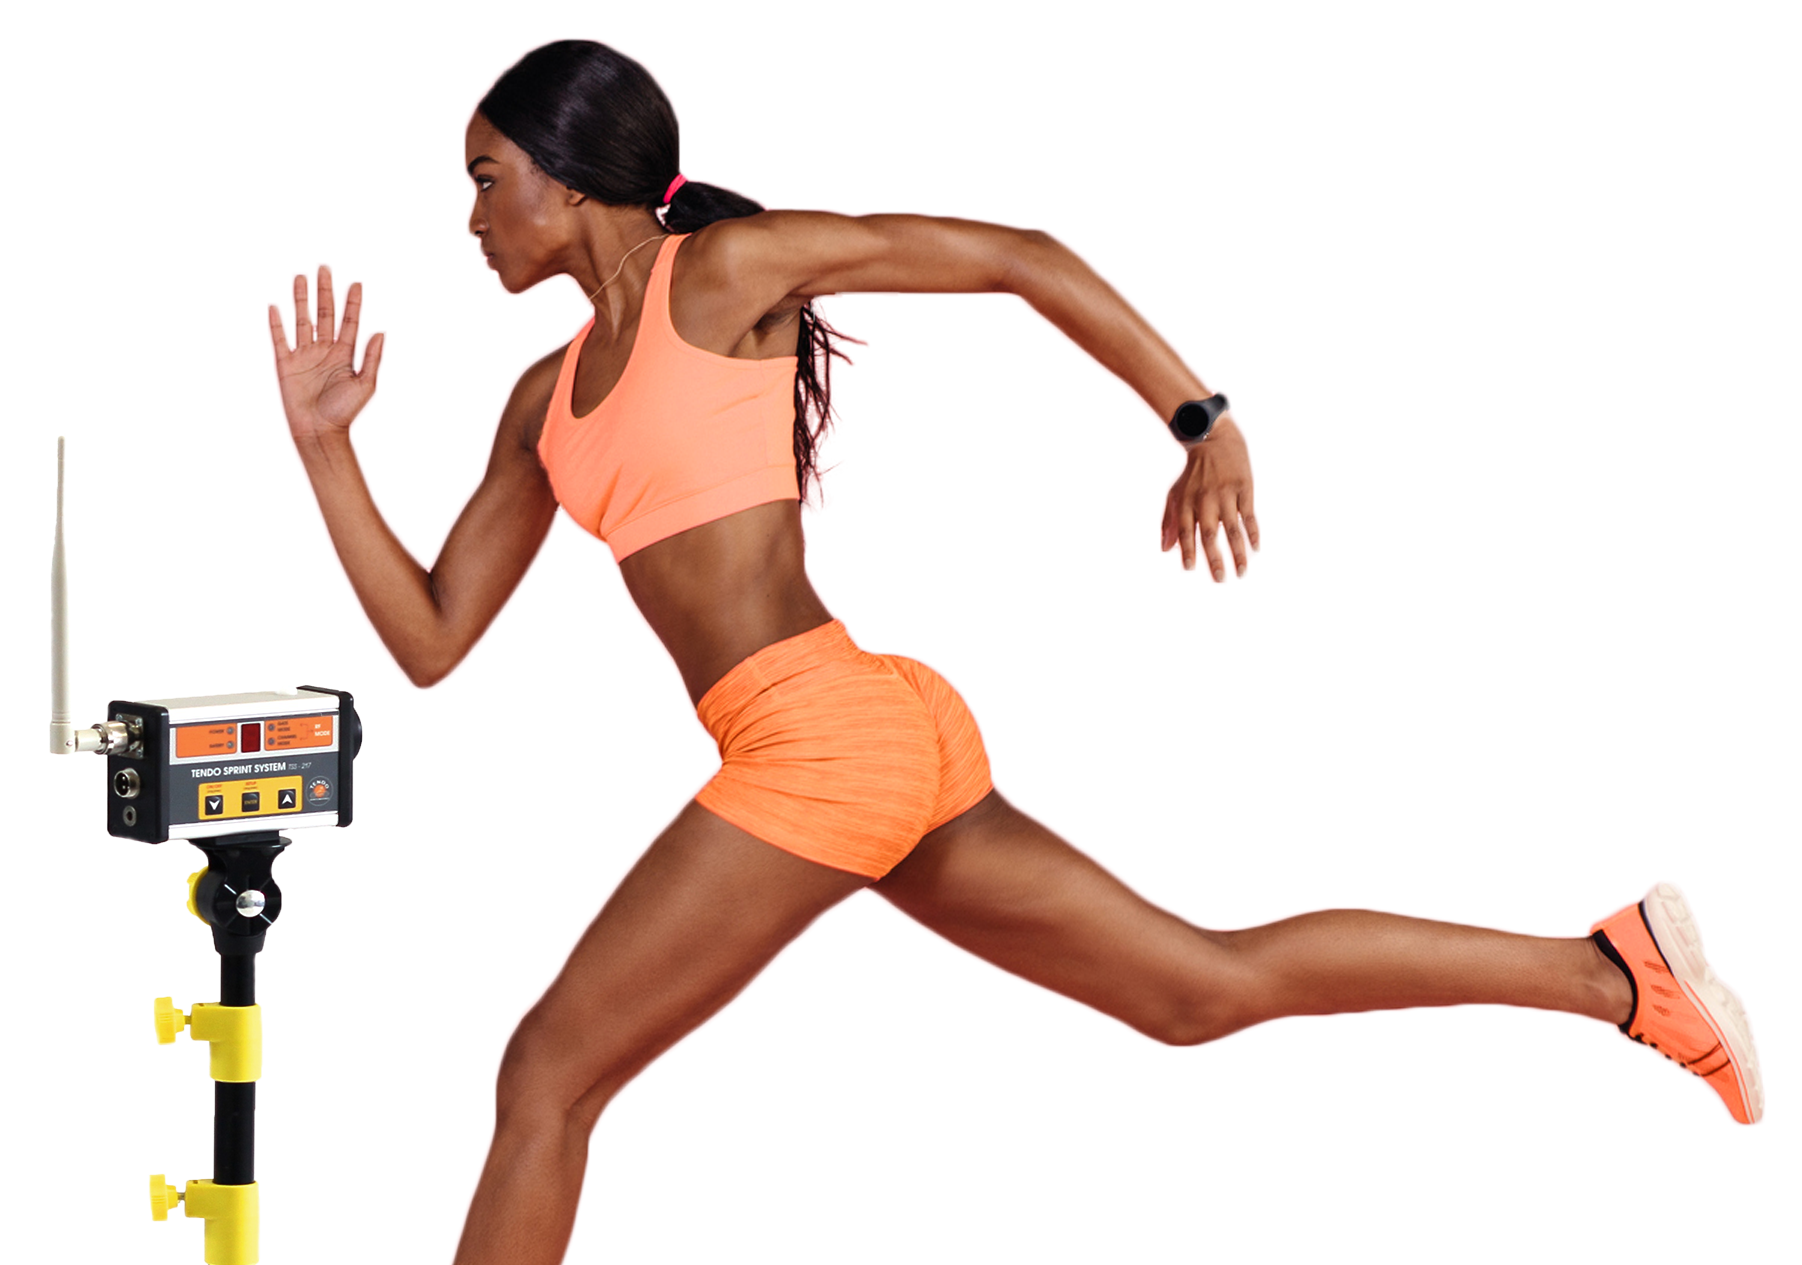 Woman athlete crossing Tendo Sprint System finish photocell beam by Tendo Sport